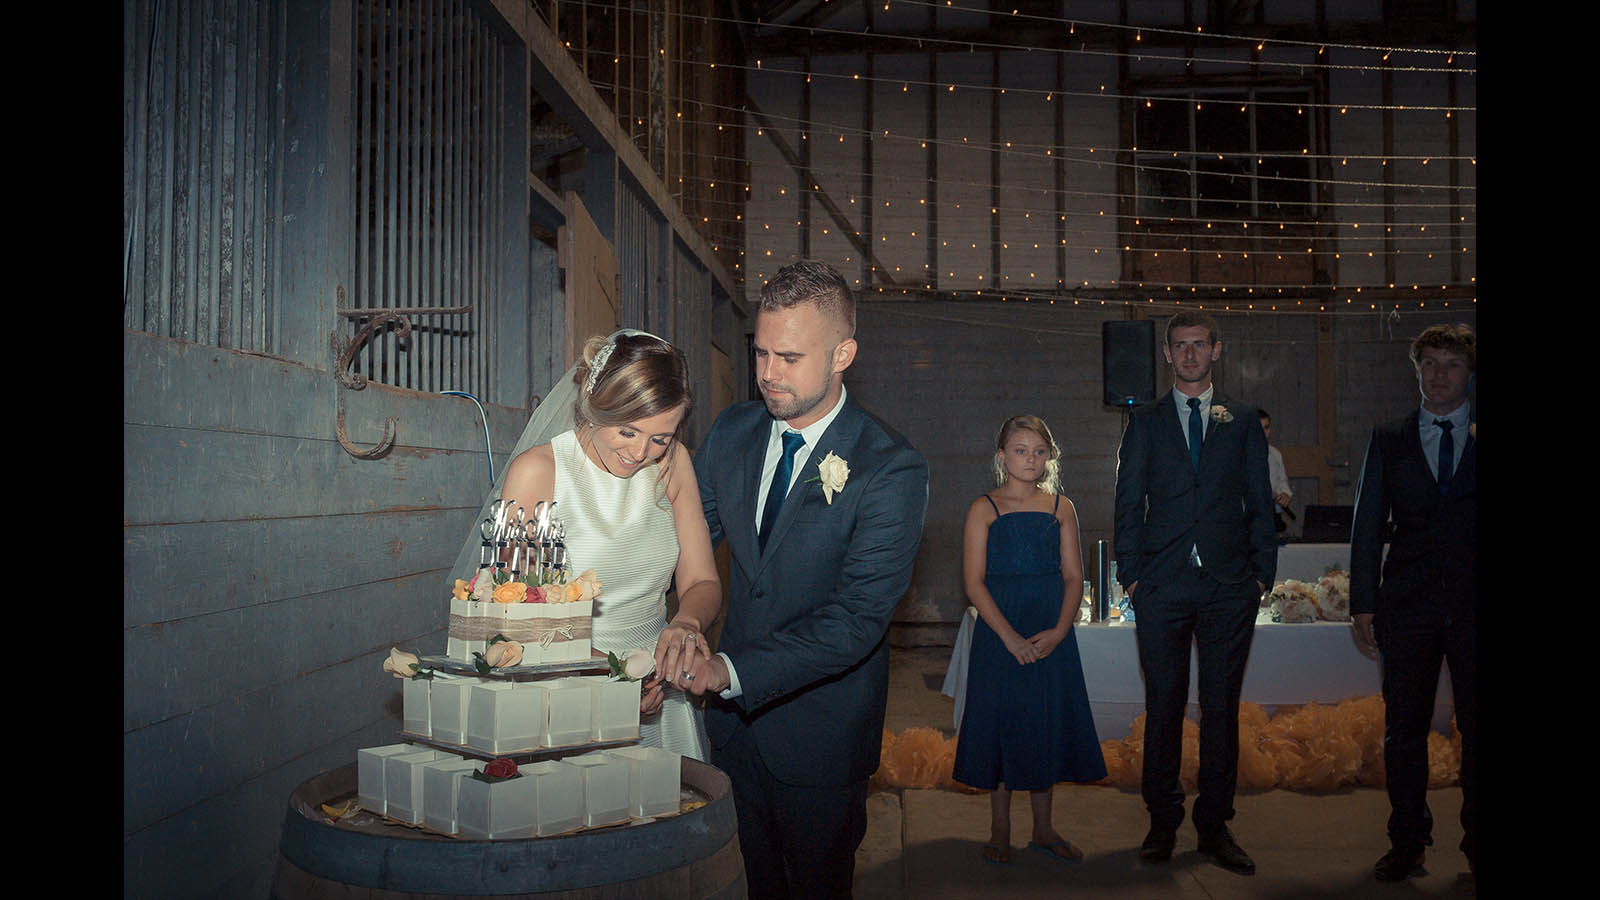 Geelong Wedding Cutting Cake